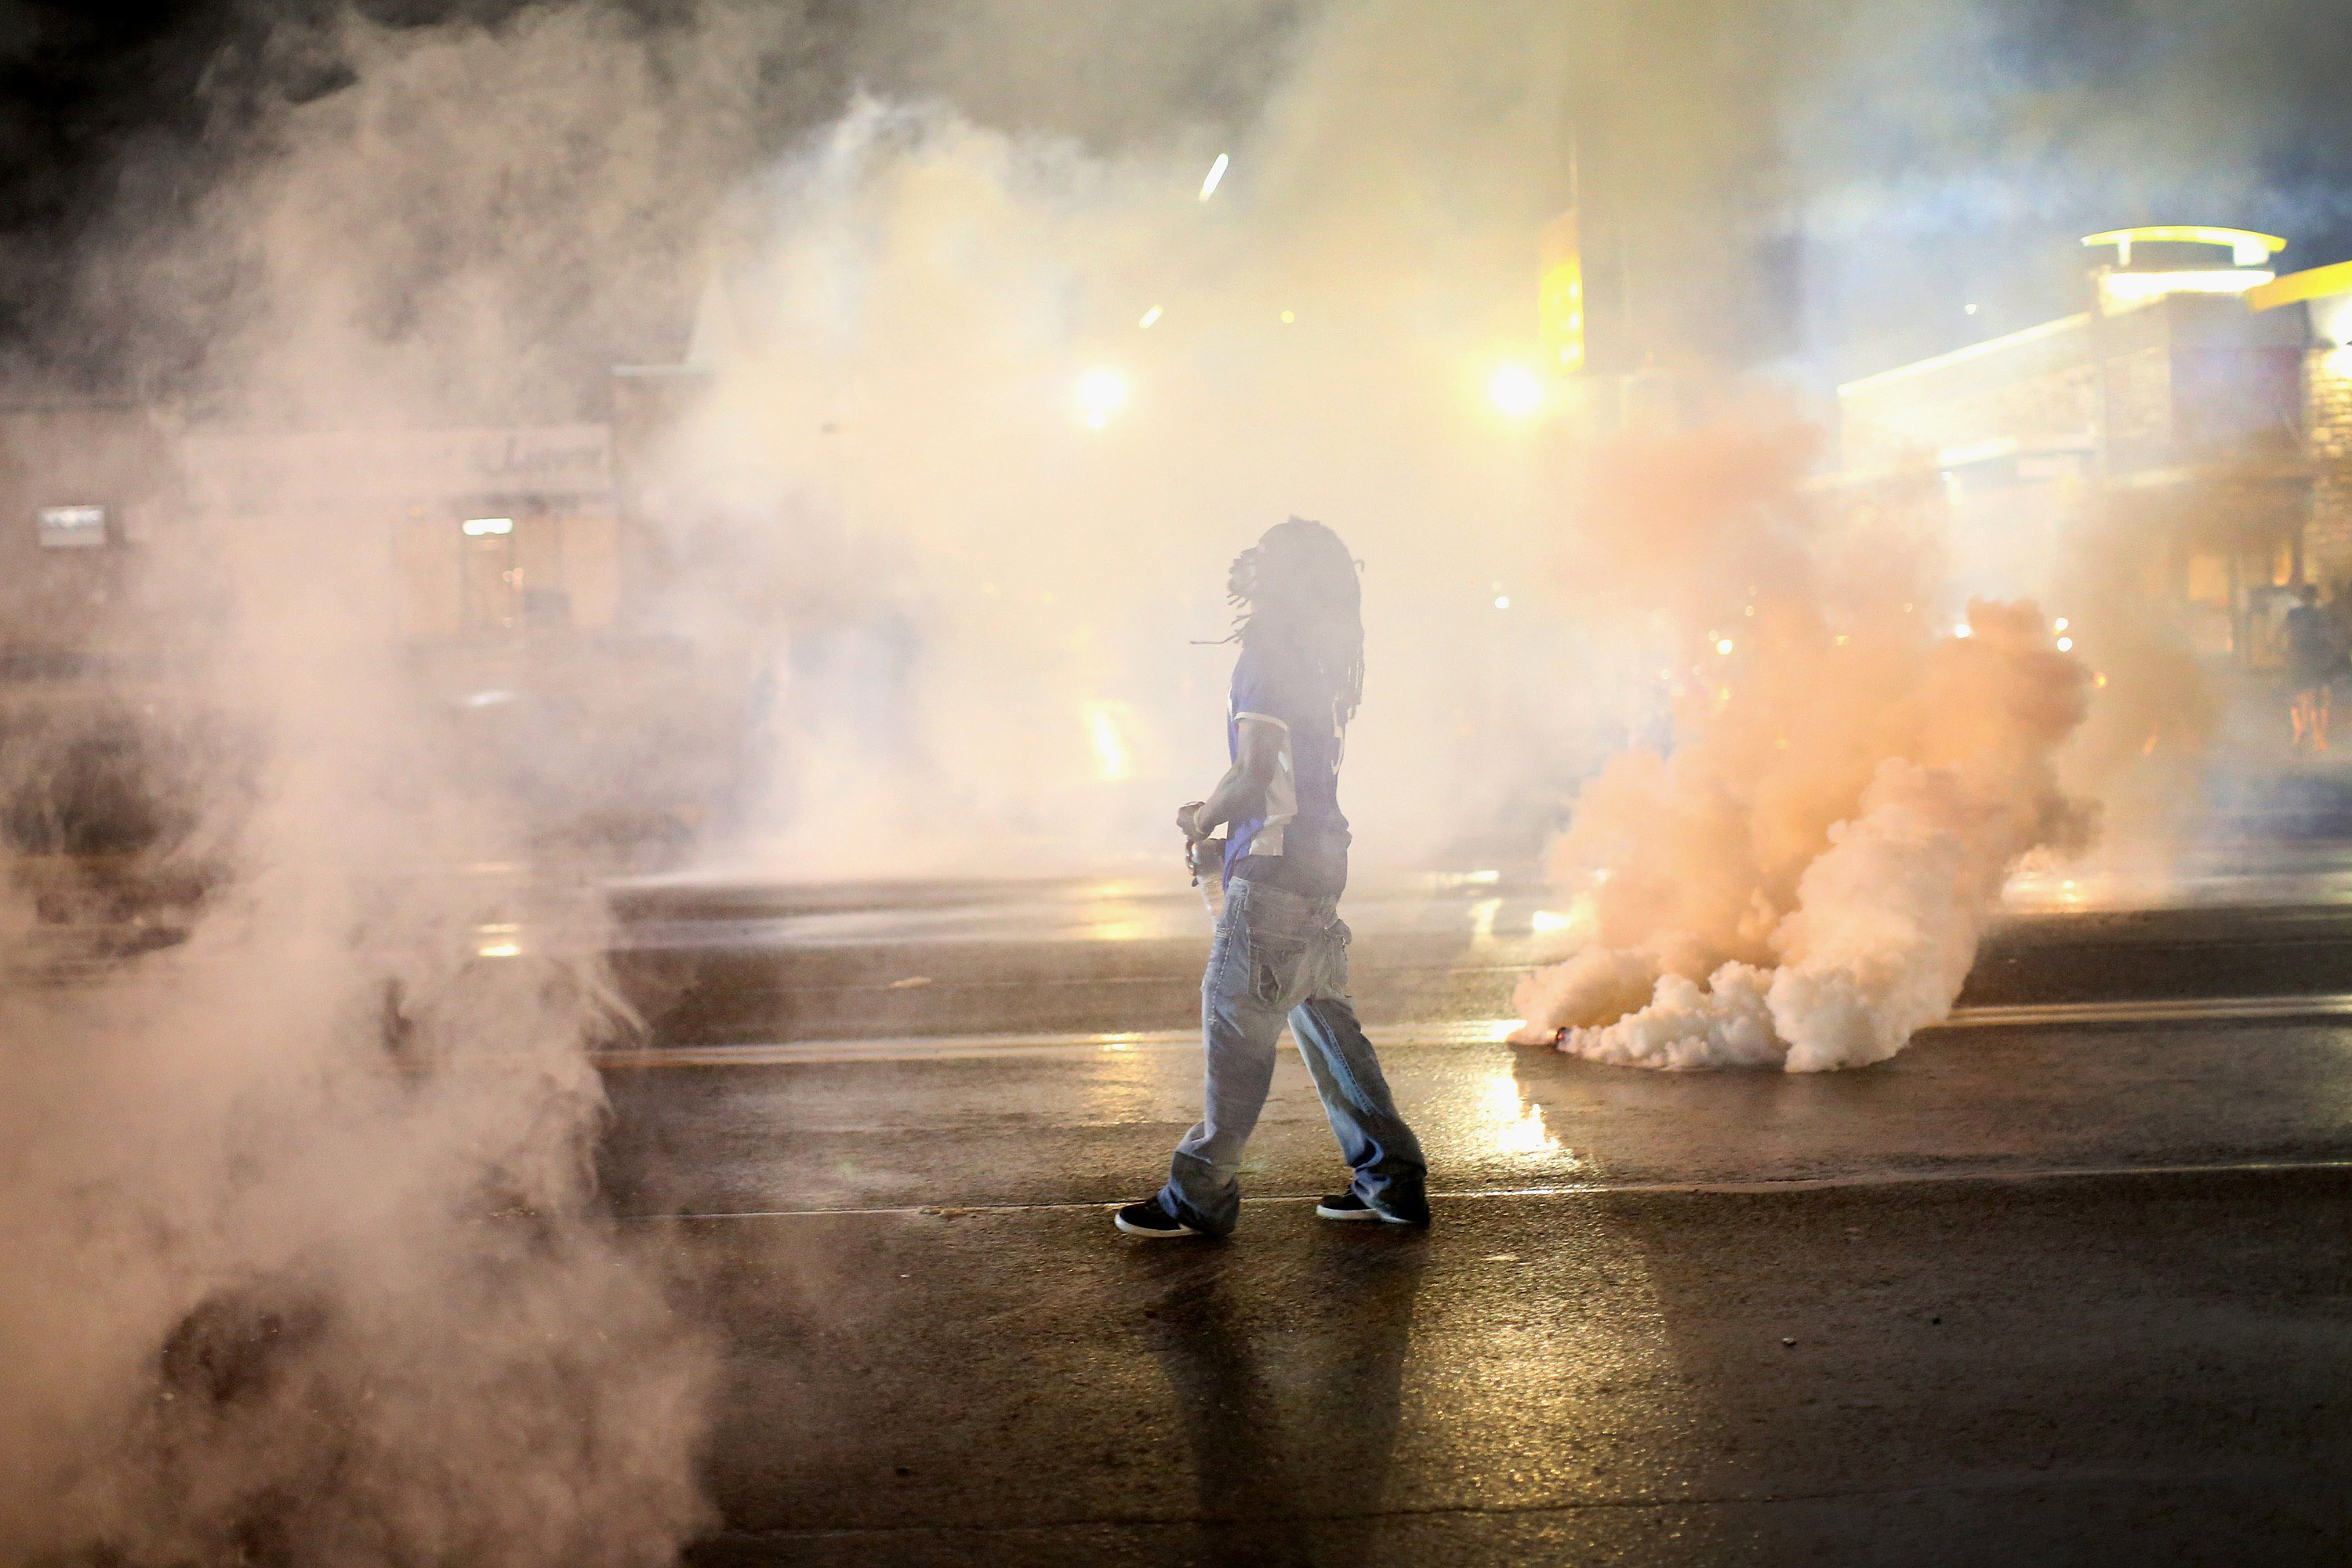 A demonstrator walks through smoke launched by police after a skirmish in Ferguson, Mo. on Aug. 15, 2014